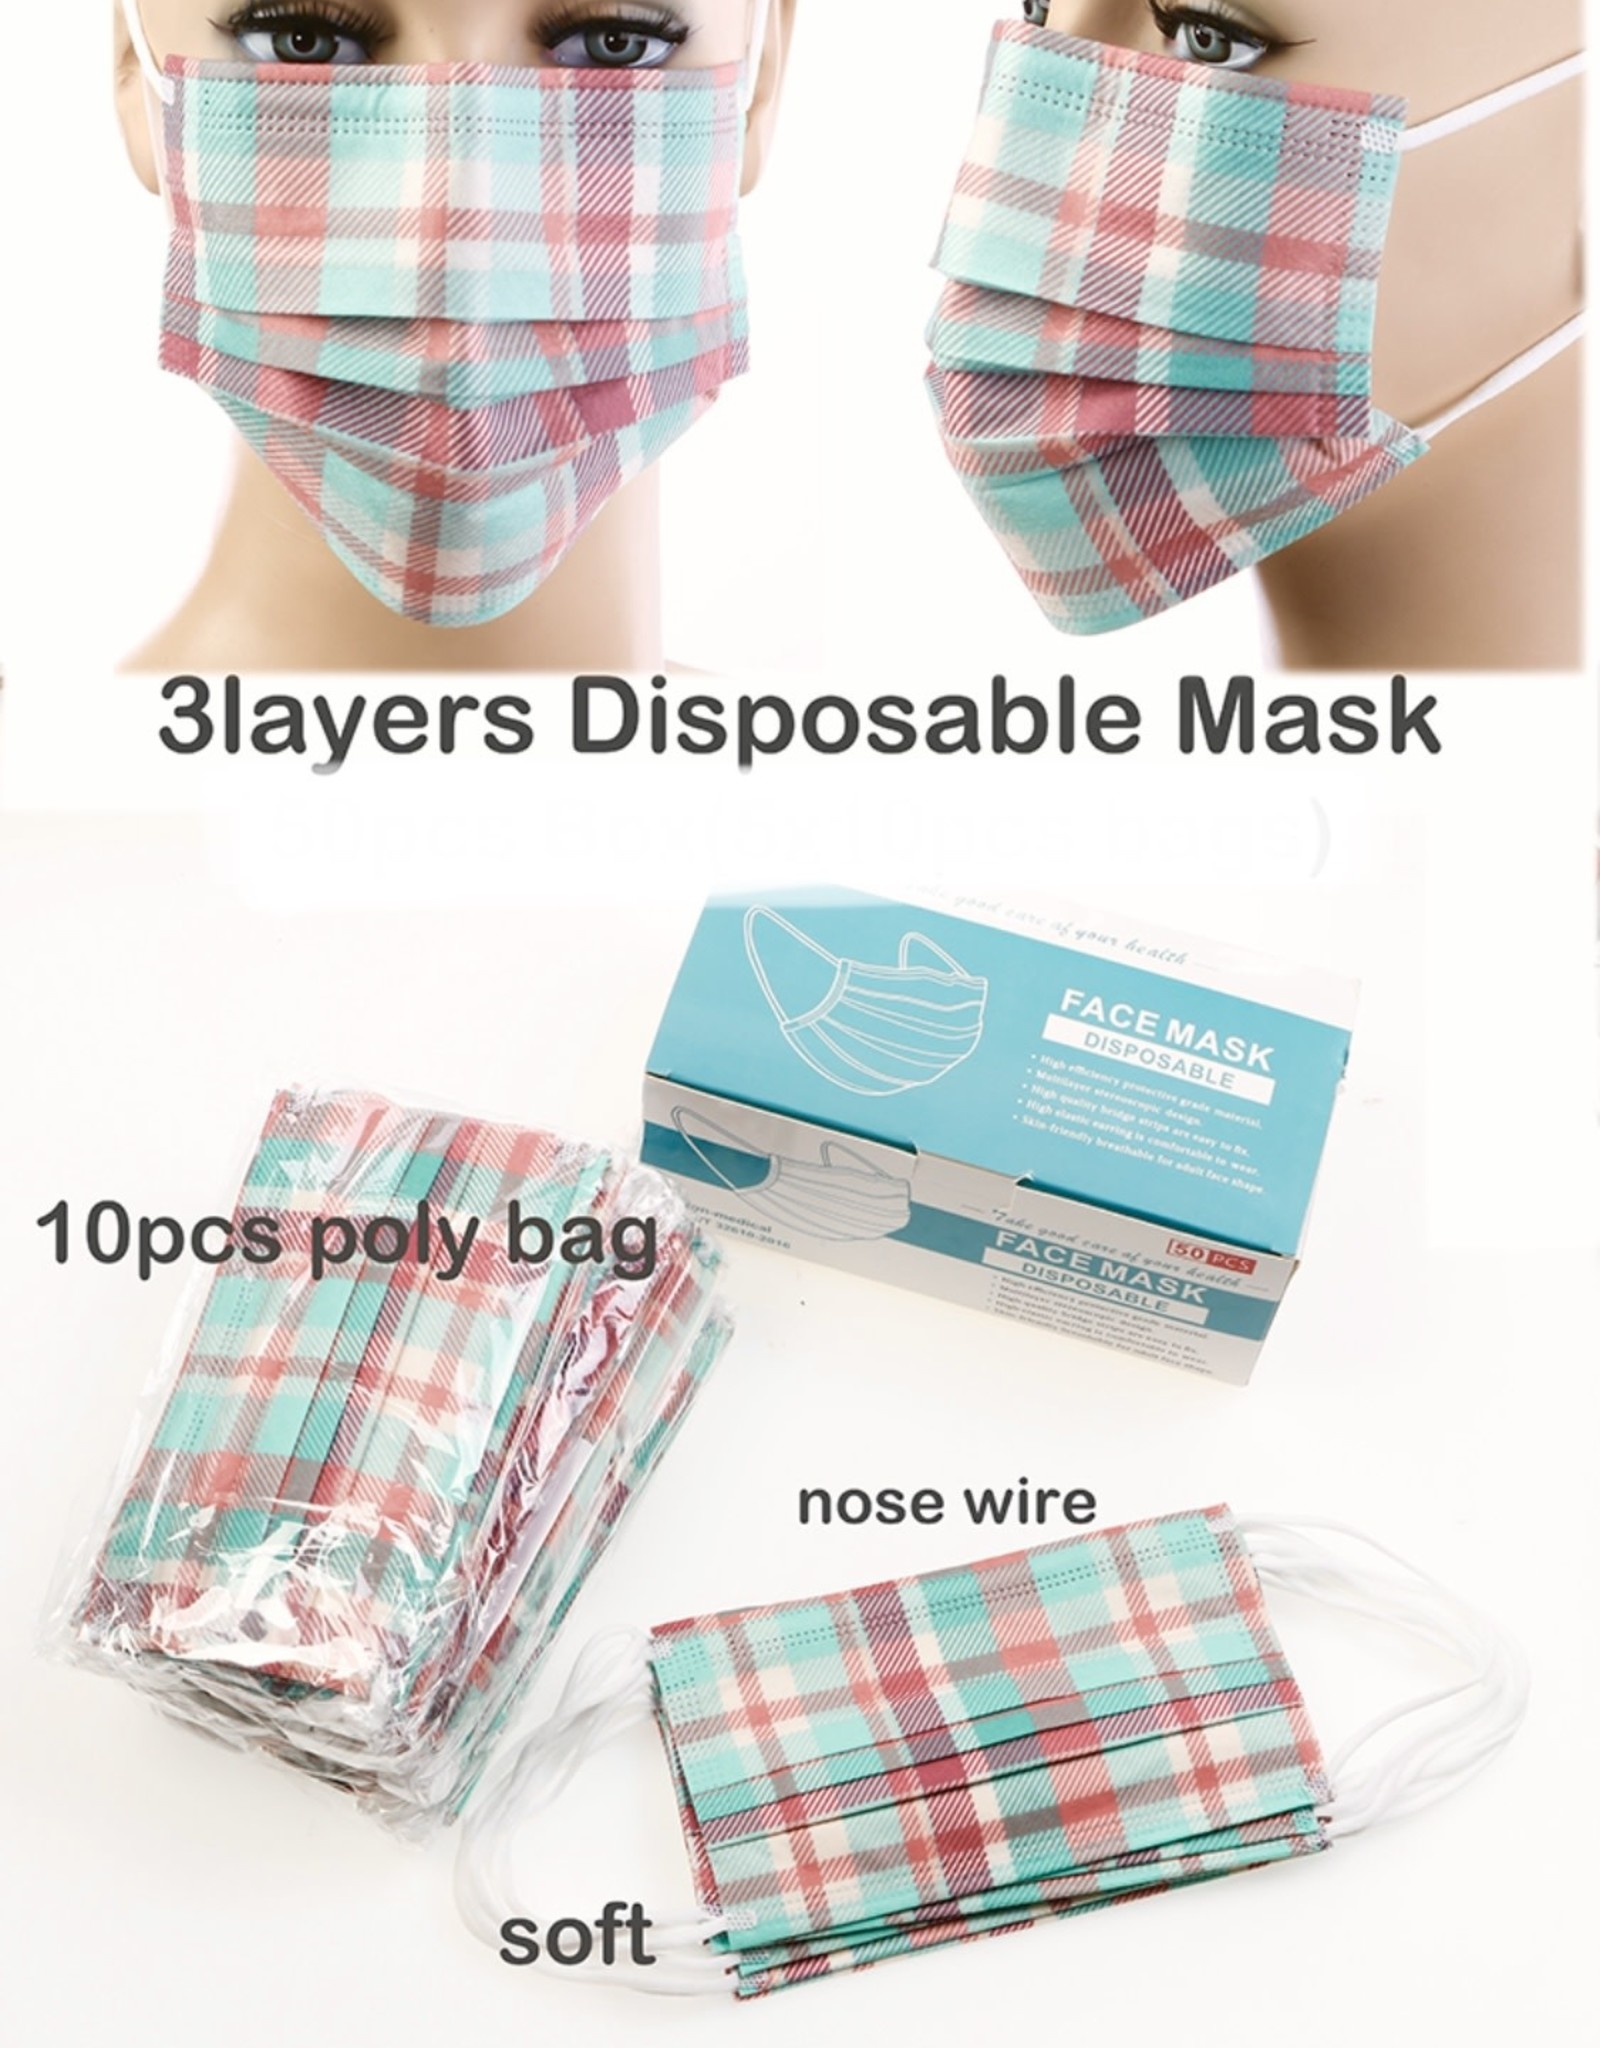 FACE MASK 10 PACK 3-LAYER DISPOSABLE PLAID